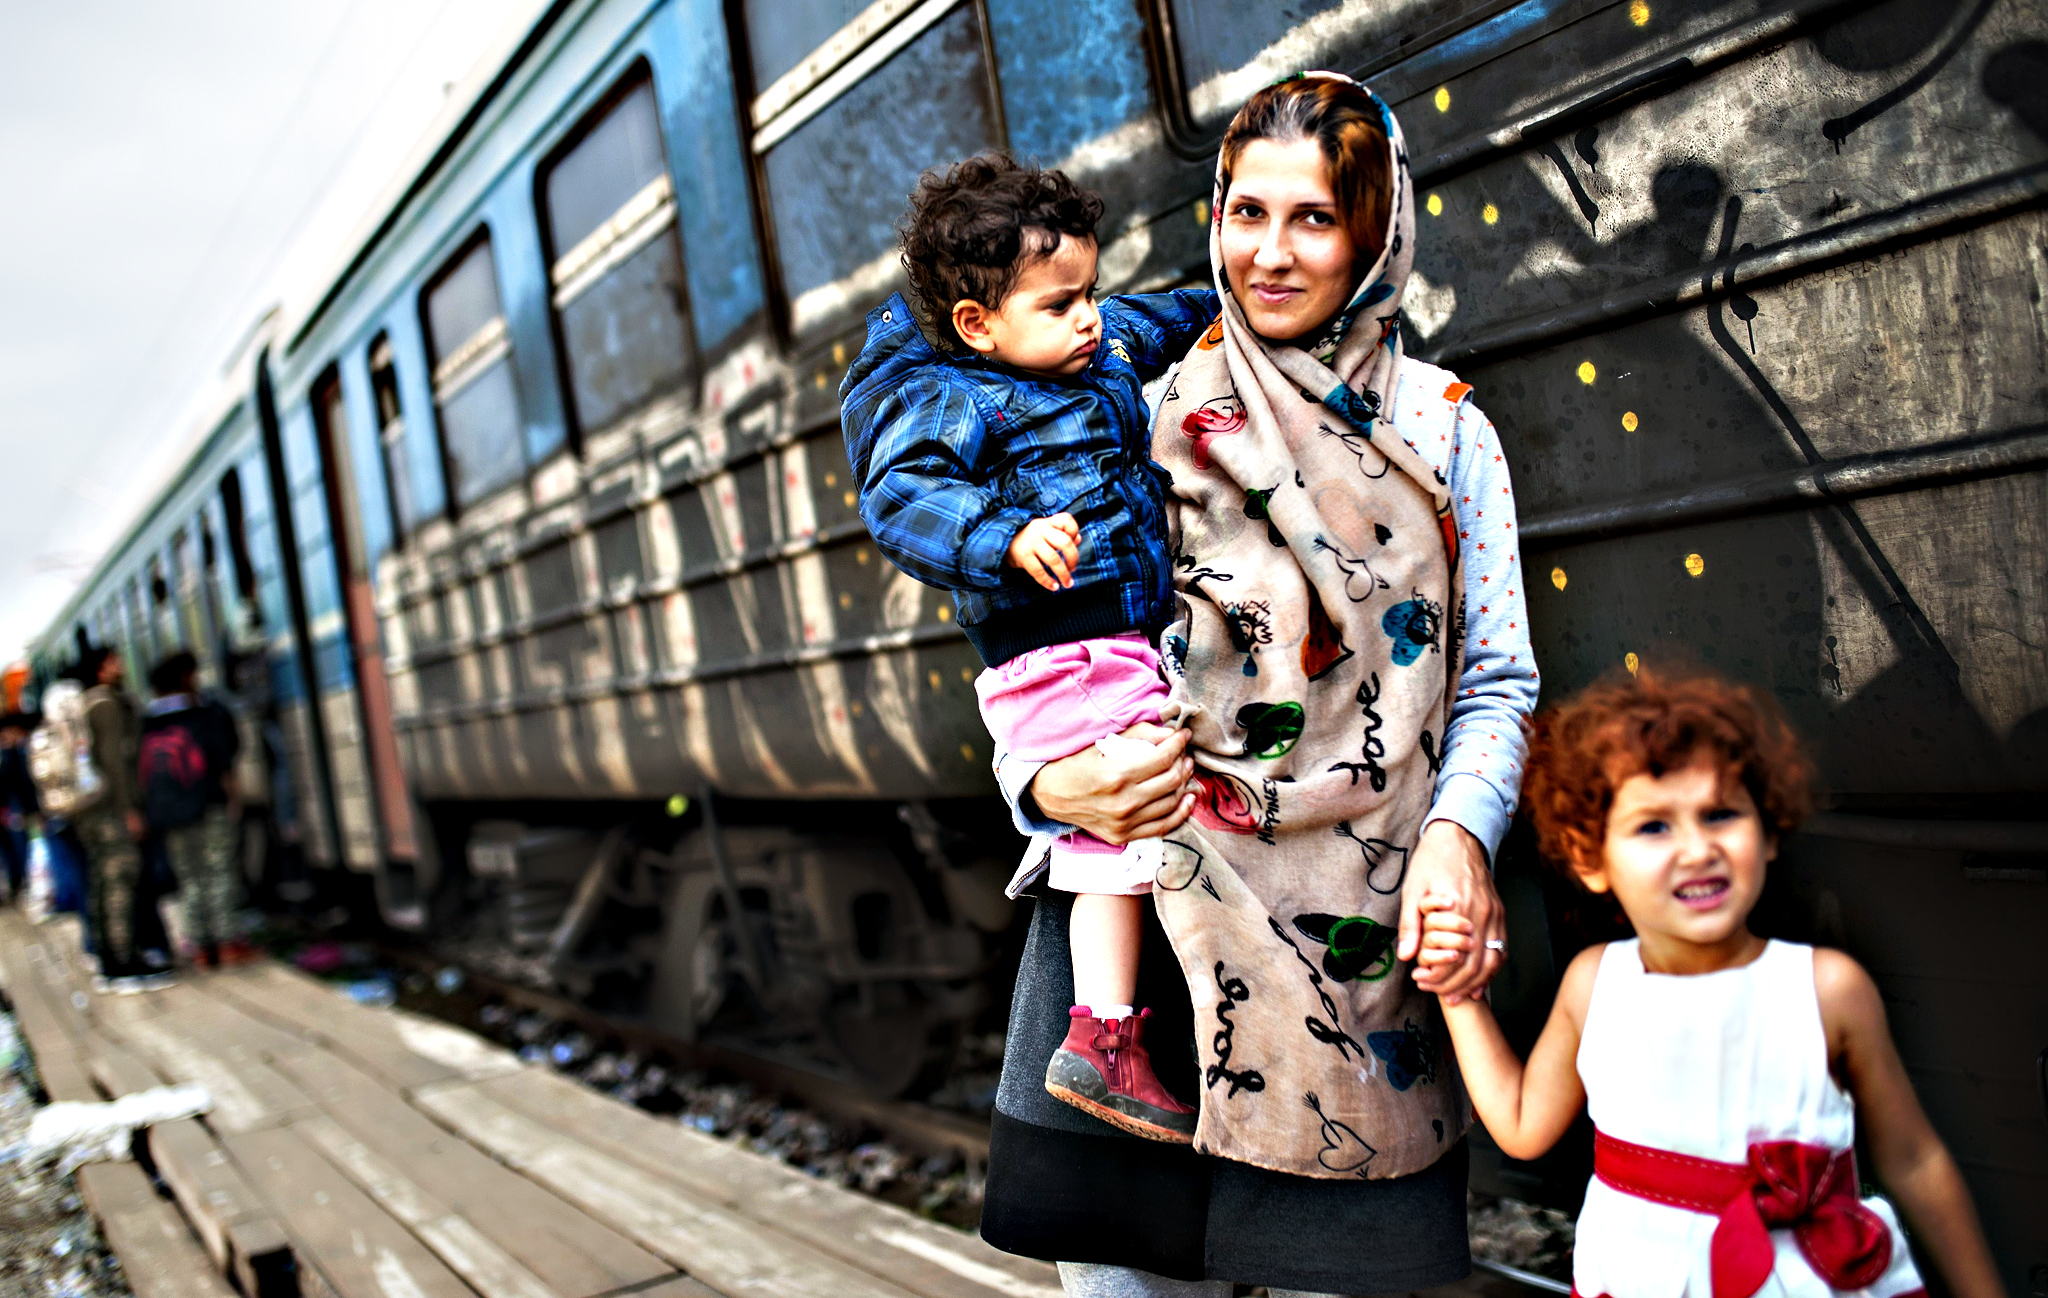 A migrant woman with her children board a train, after crossing the Greek-Macedonian border, near Gevgelija, on Friday.